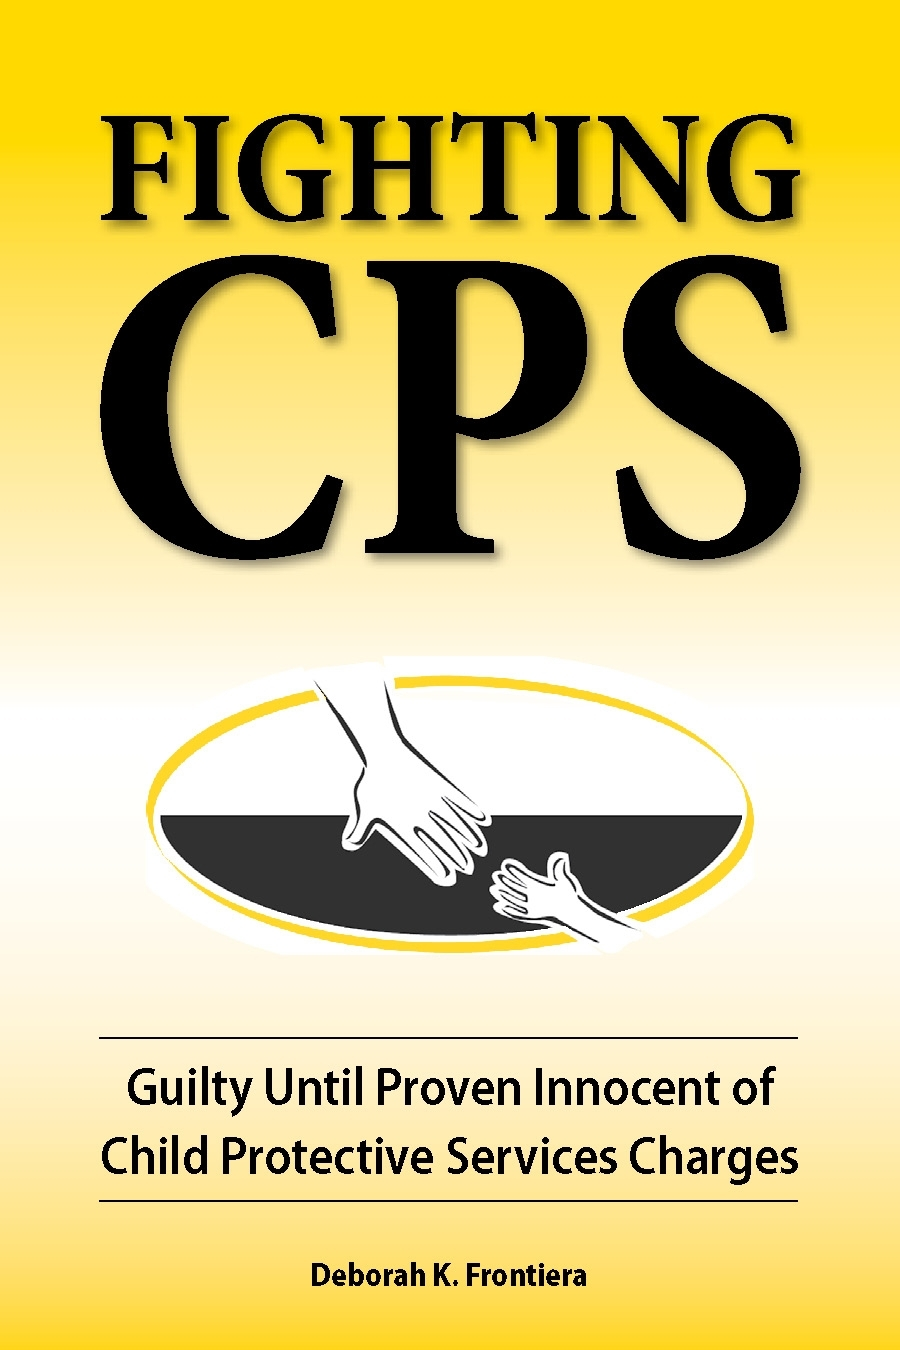 Fighting CPS: Guilty until Proven Innocent of Child Protective Services Charges Image